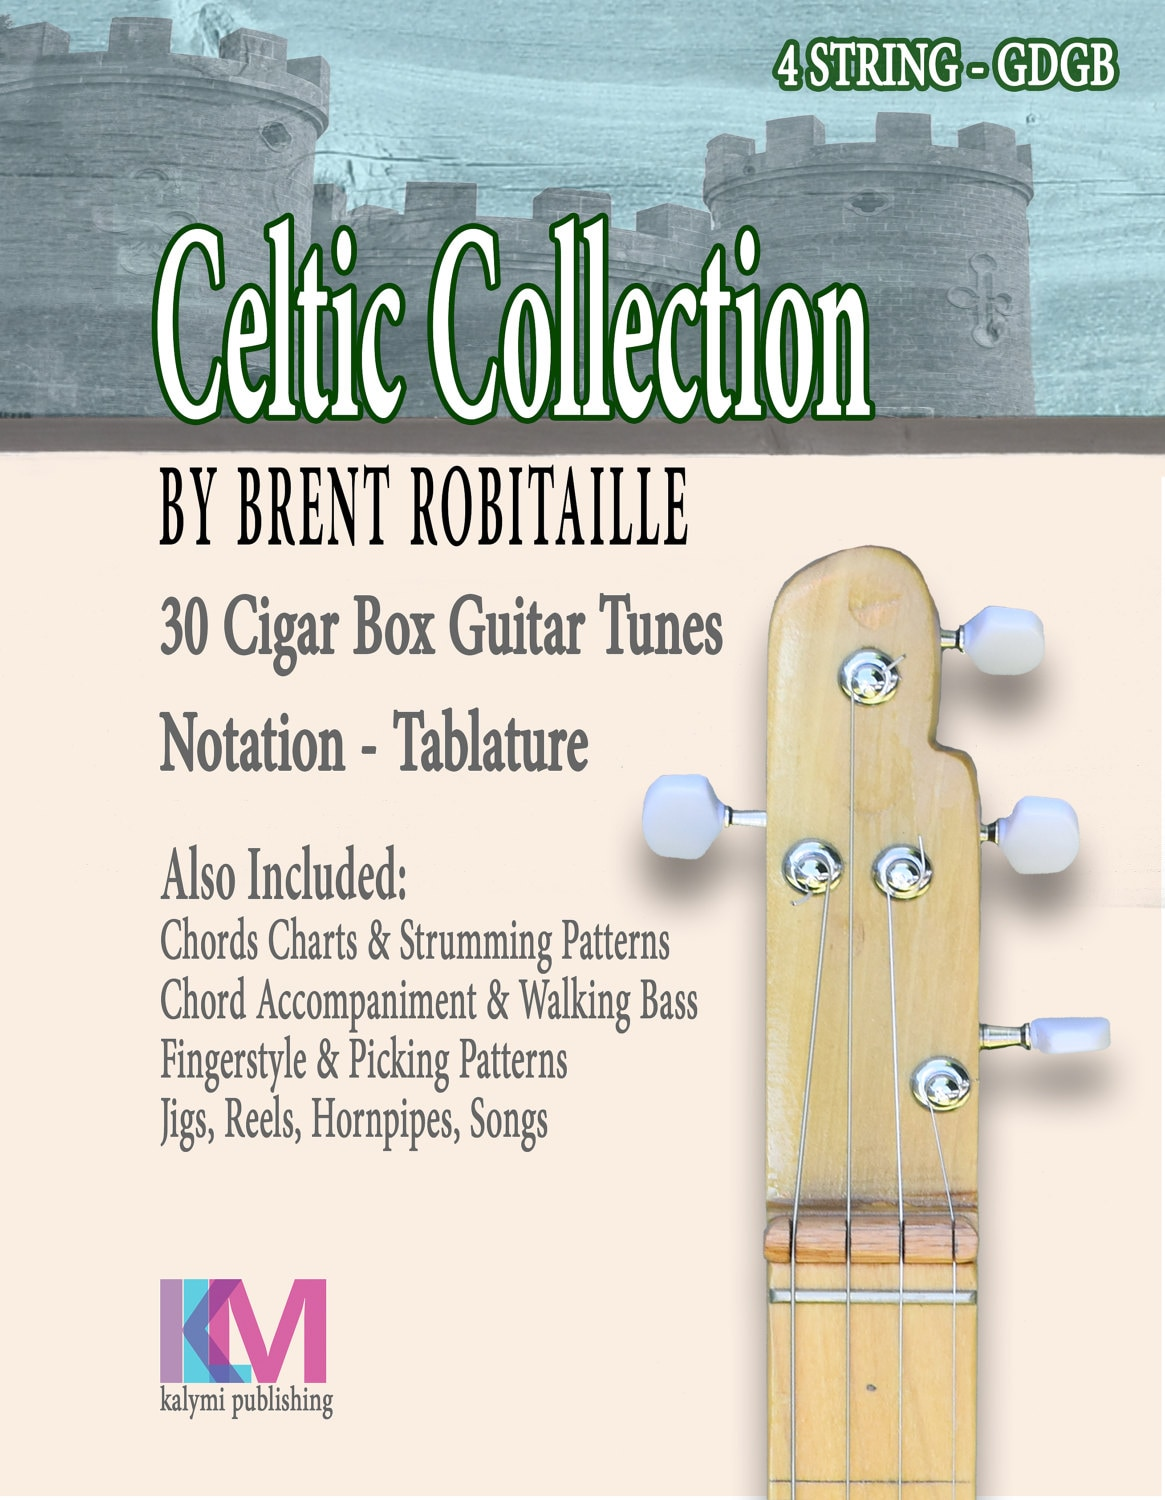 Celtic Collection 30 Tunes For 4 String Cigar Box Guitar Etsy